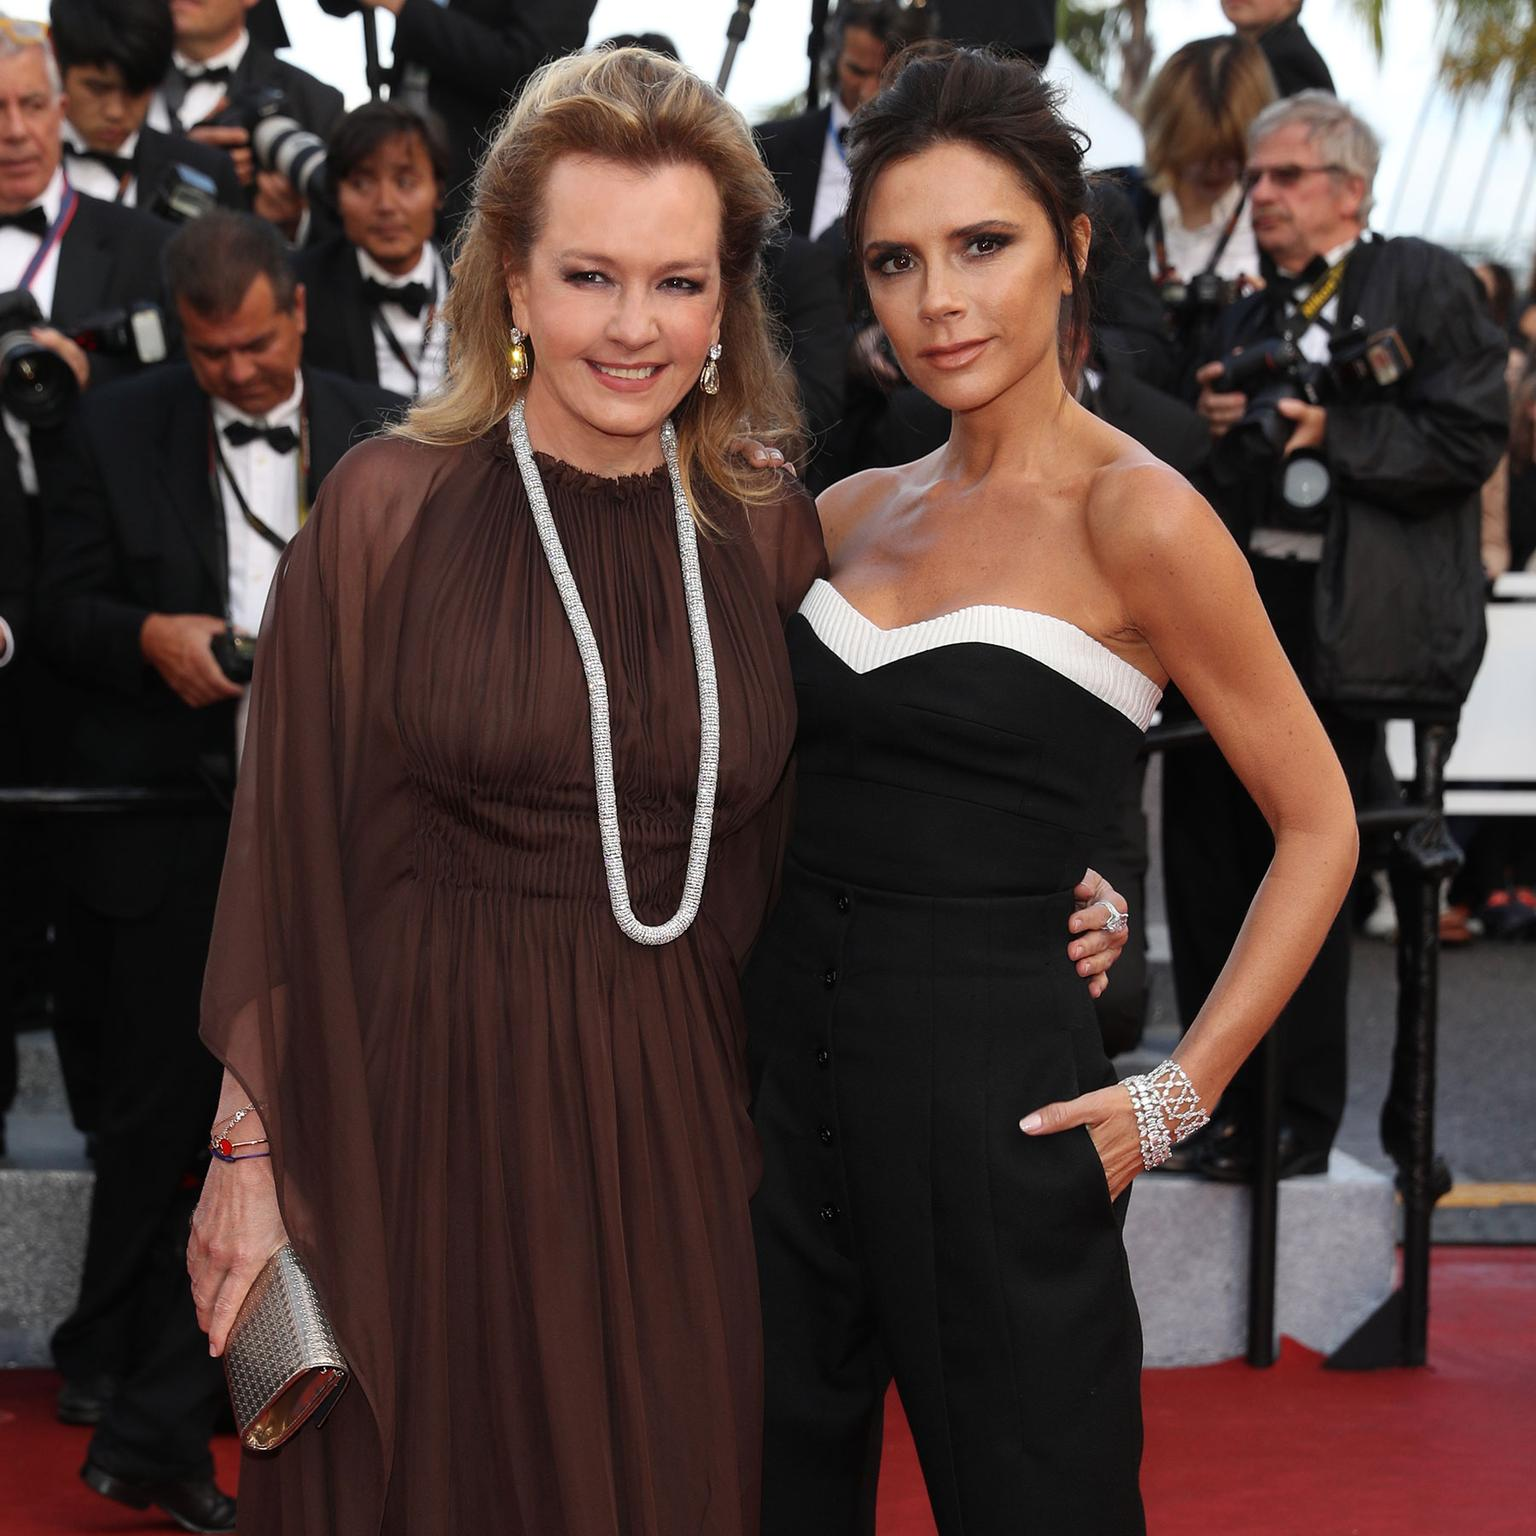 Cannes 2016 Day 1: Caroline Scheufele and Victoria Beckham in Chopard